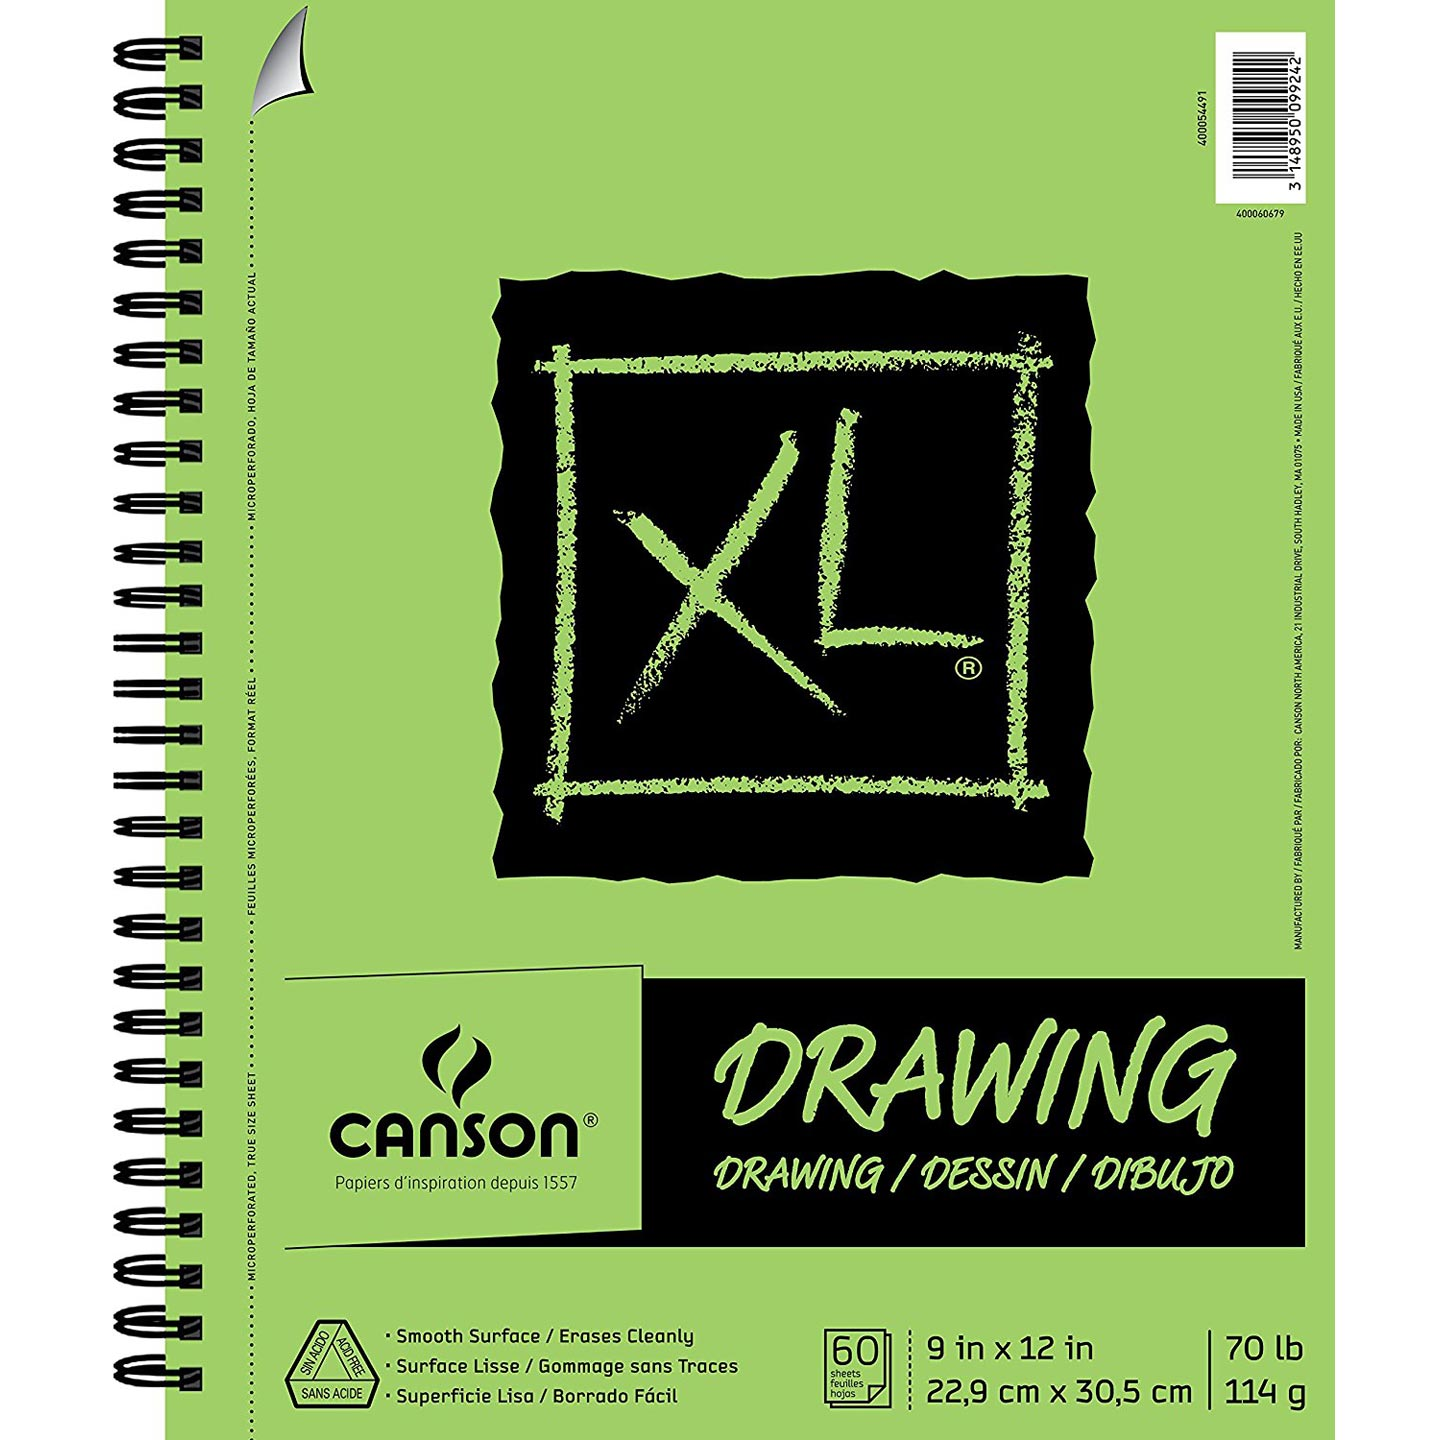 Canson XL Drawing Paper Pad: 9 x 12 inches